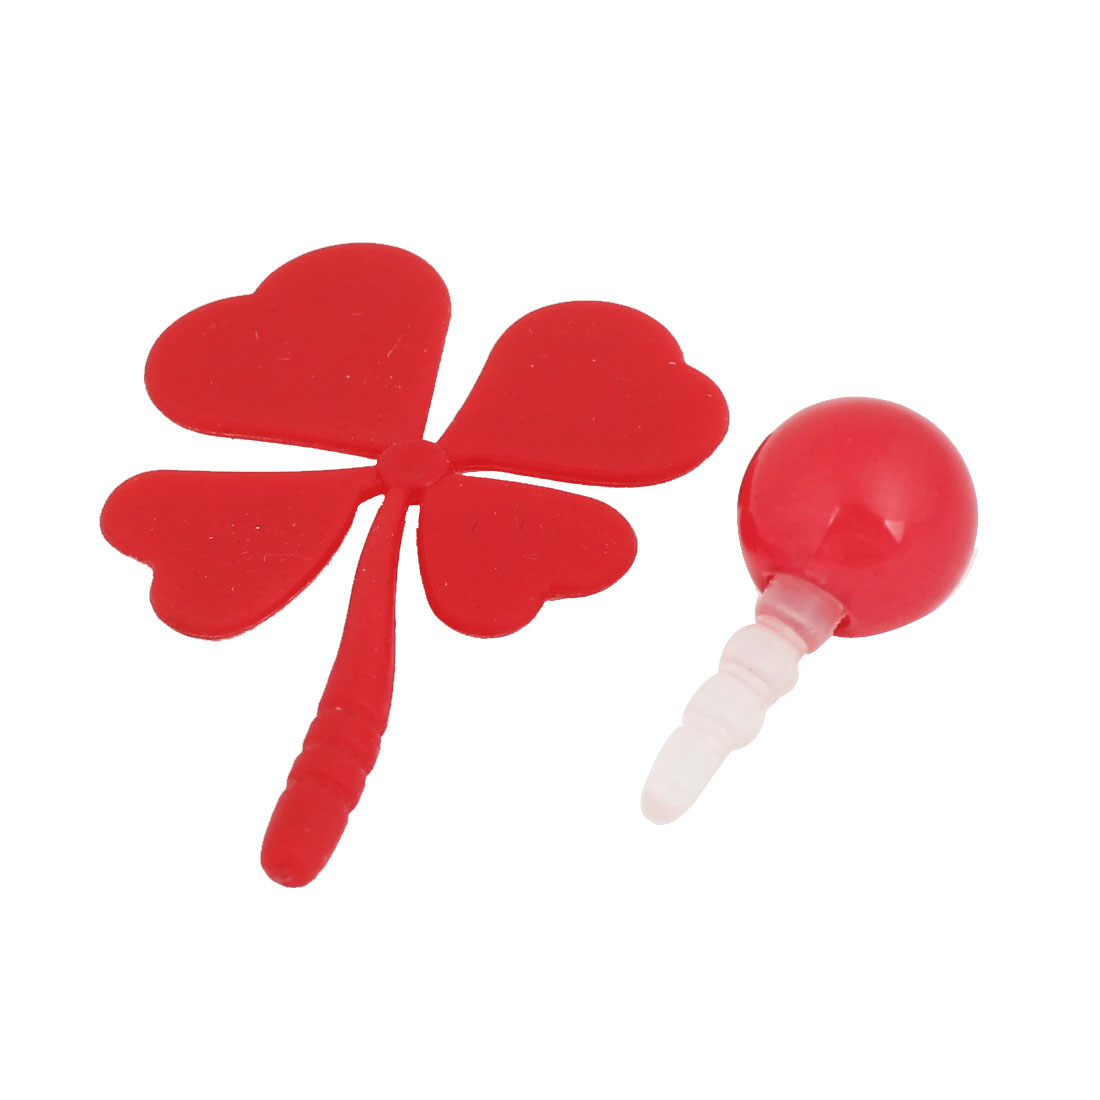 2 Pcs Red Bead Four Leaf Clover Design Phone 3.5mm Anti Dust Plug